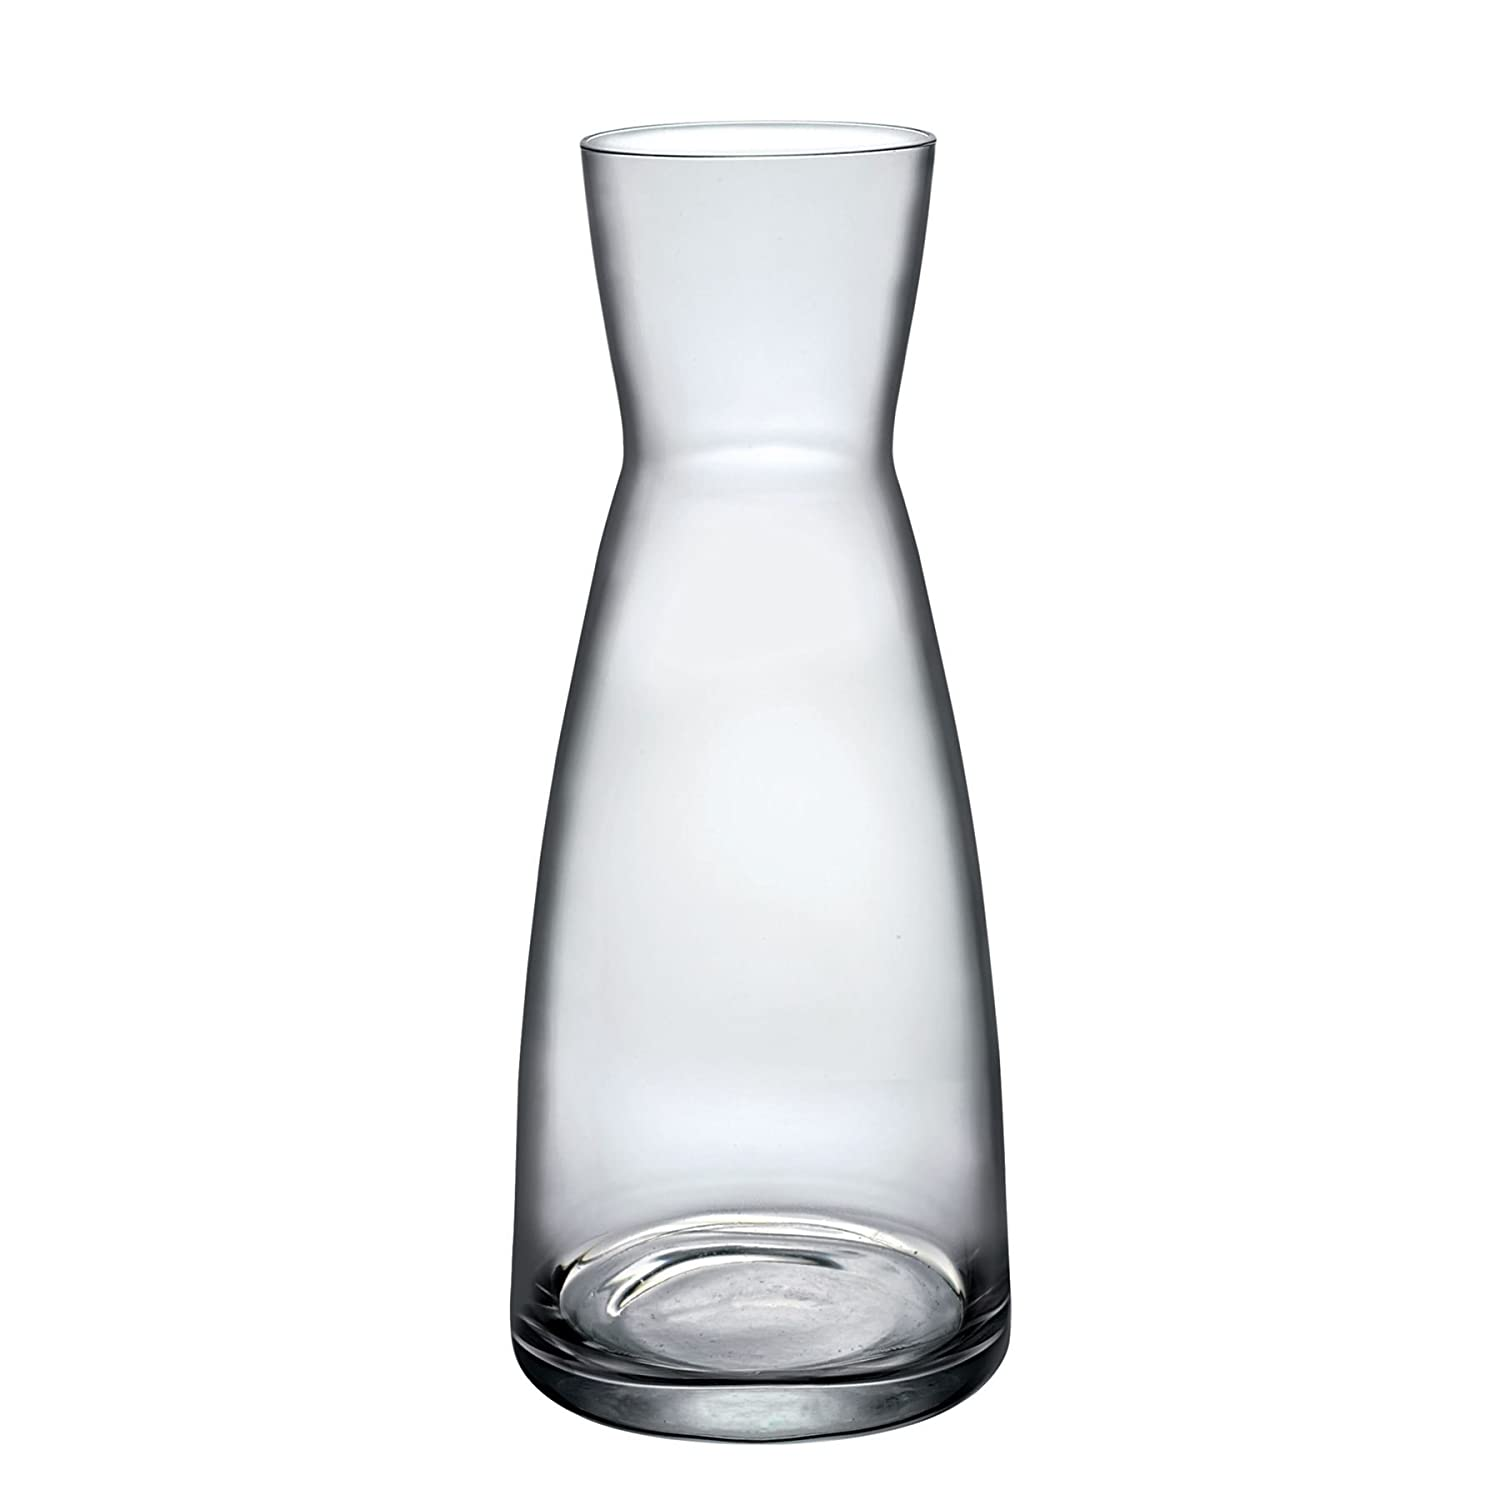 Bormioli Rocco Ypsilon Water Jug Carafe Decanter 550ml